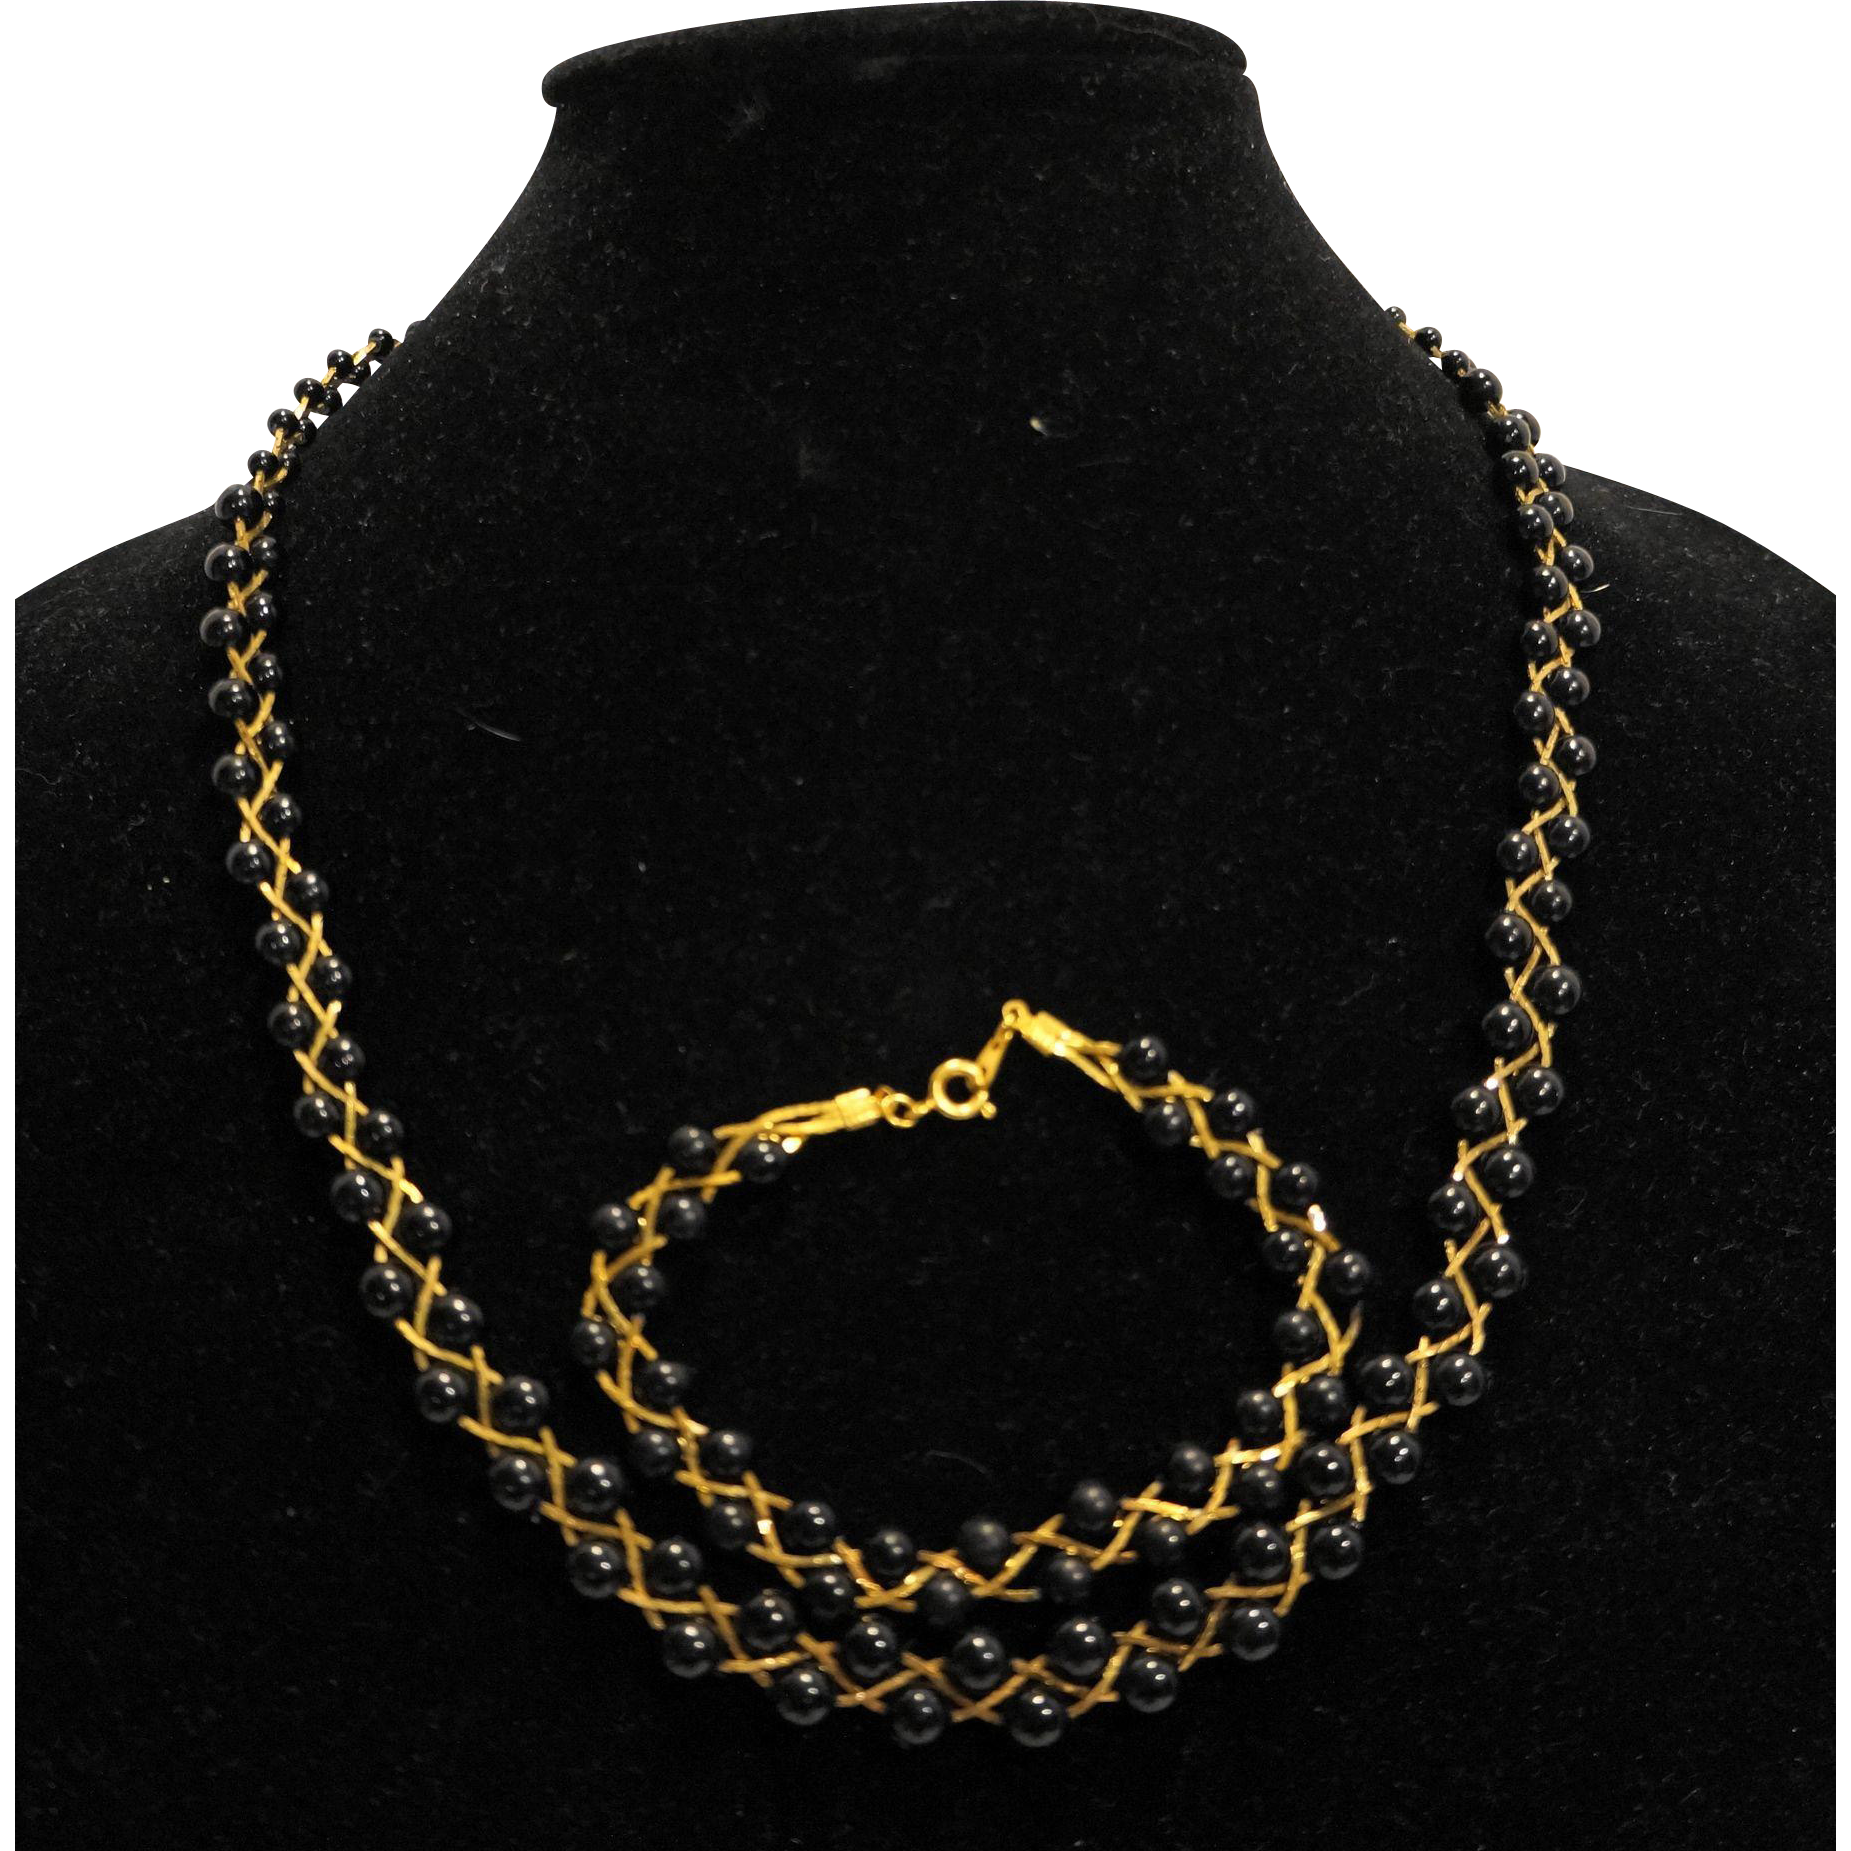 Black Beads Gold Tone Chain Braid Necklace Bracelet Set